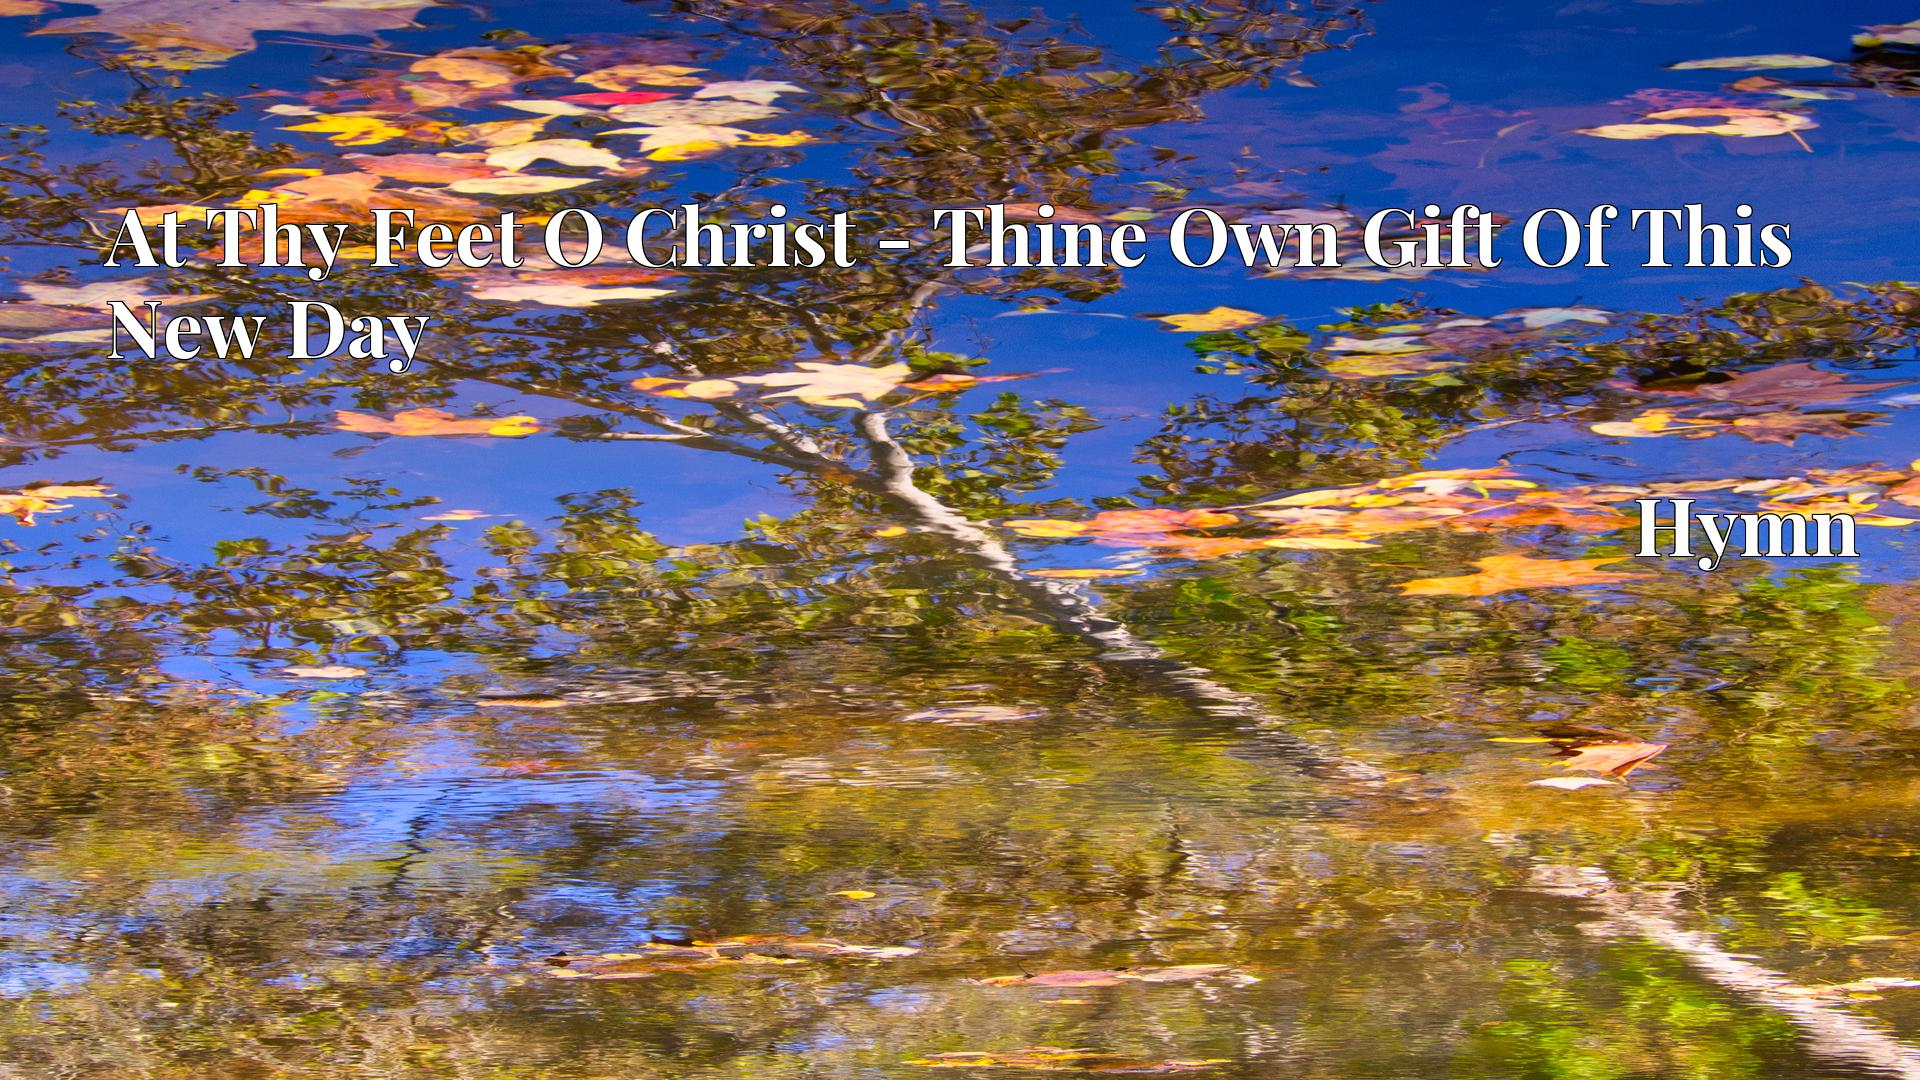 At Thy Feet O Christ - Thine Own Gift Of This New Day - Hymn